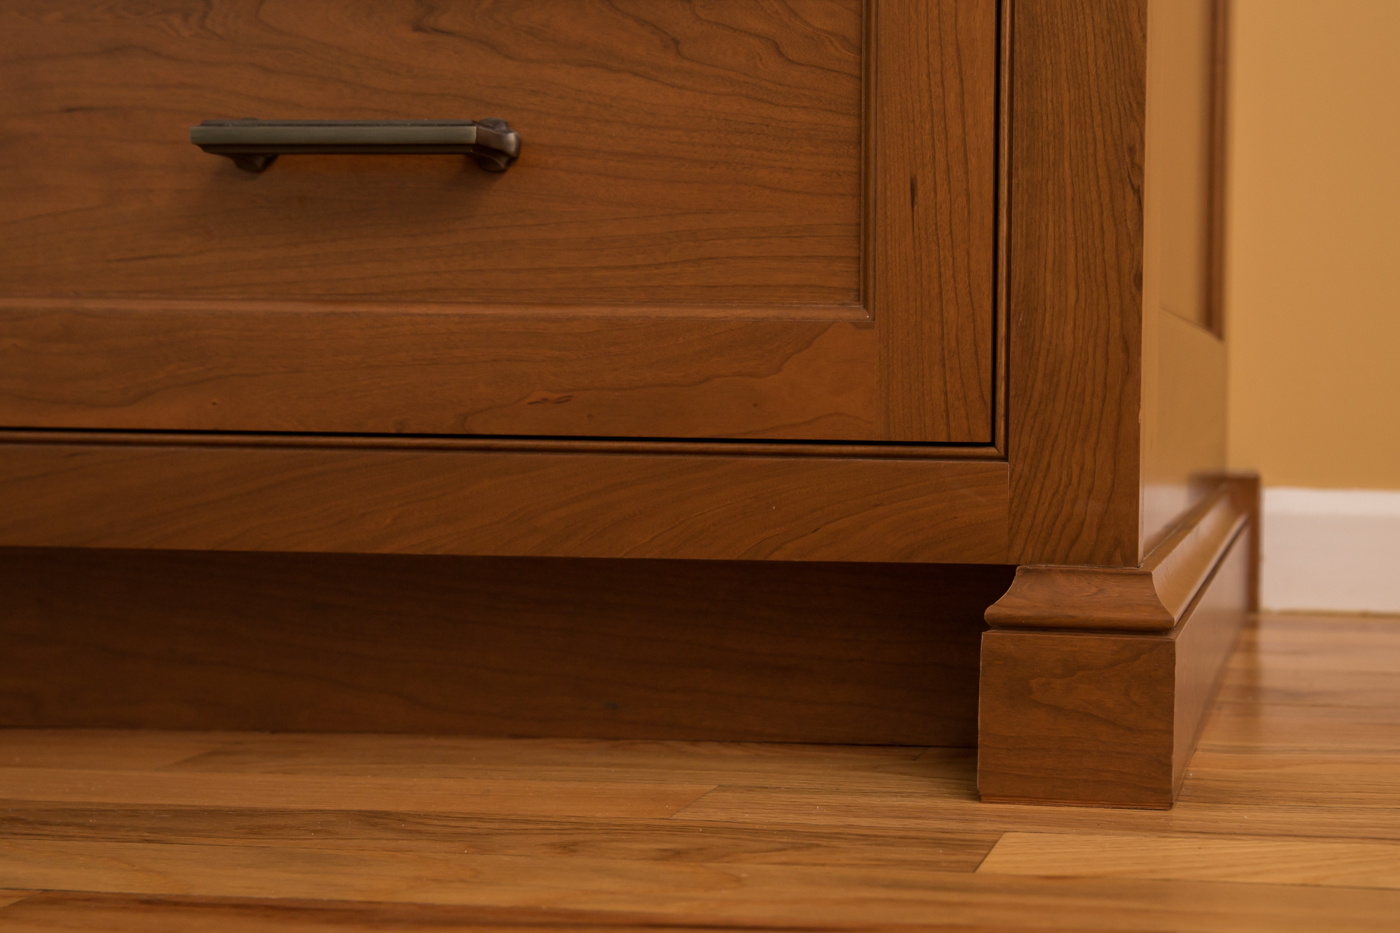 Inset Cherry Kitchen Baseboard